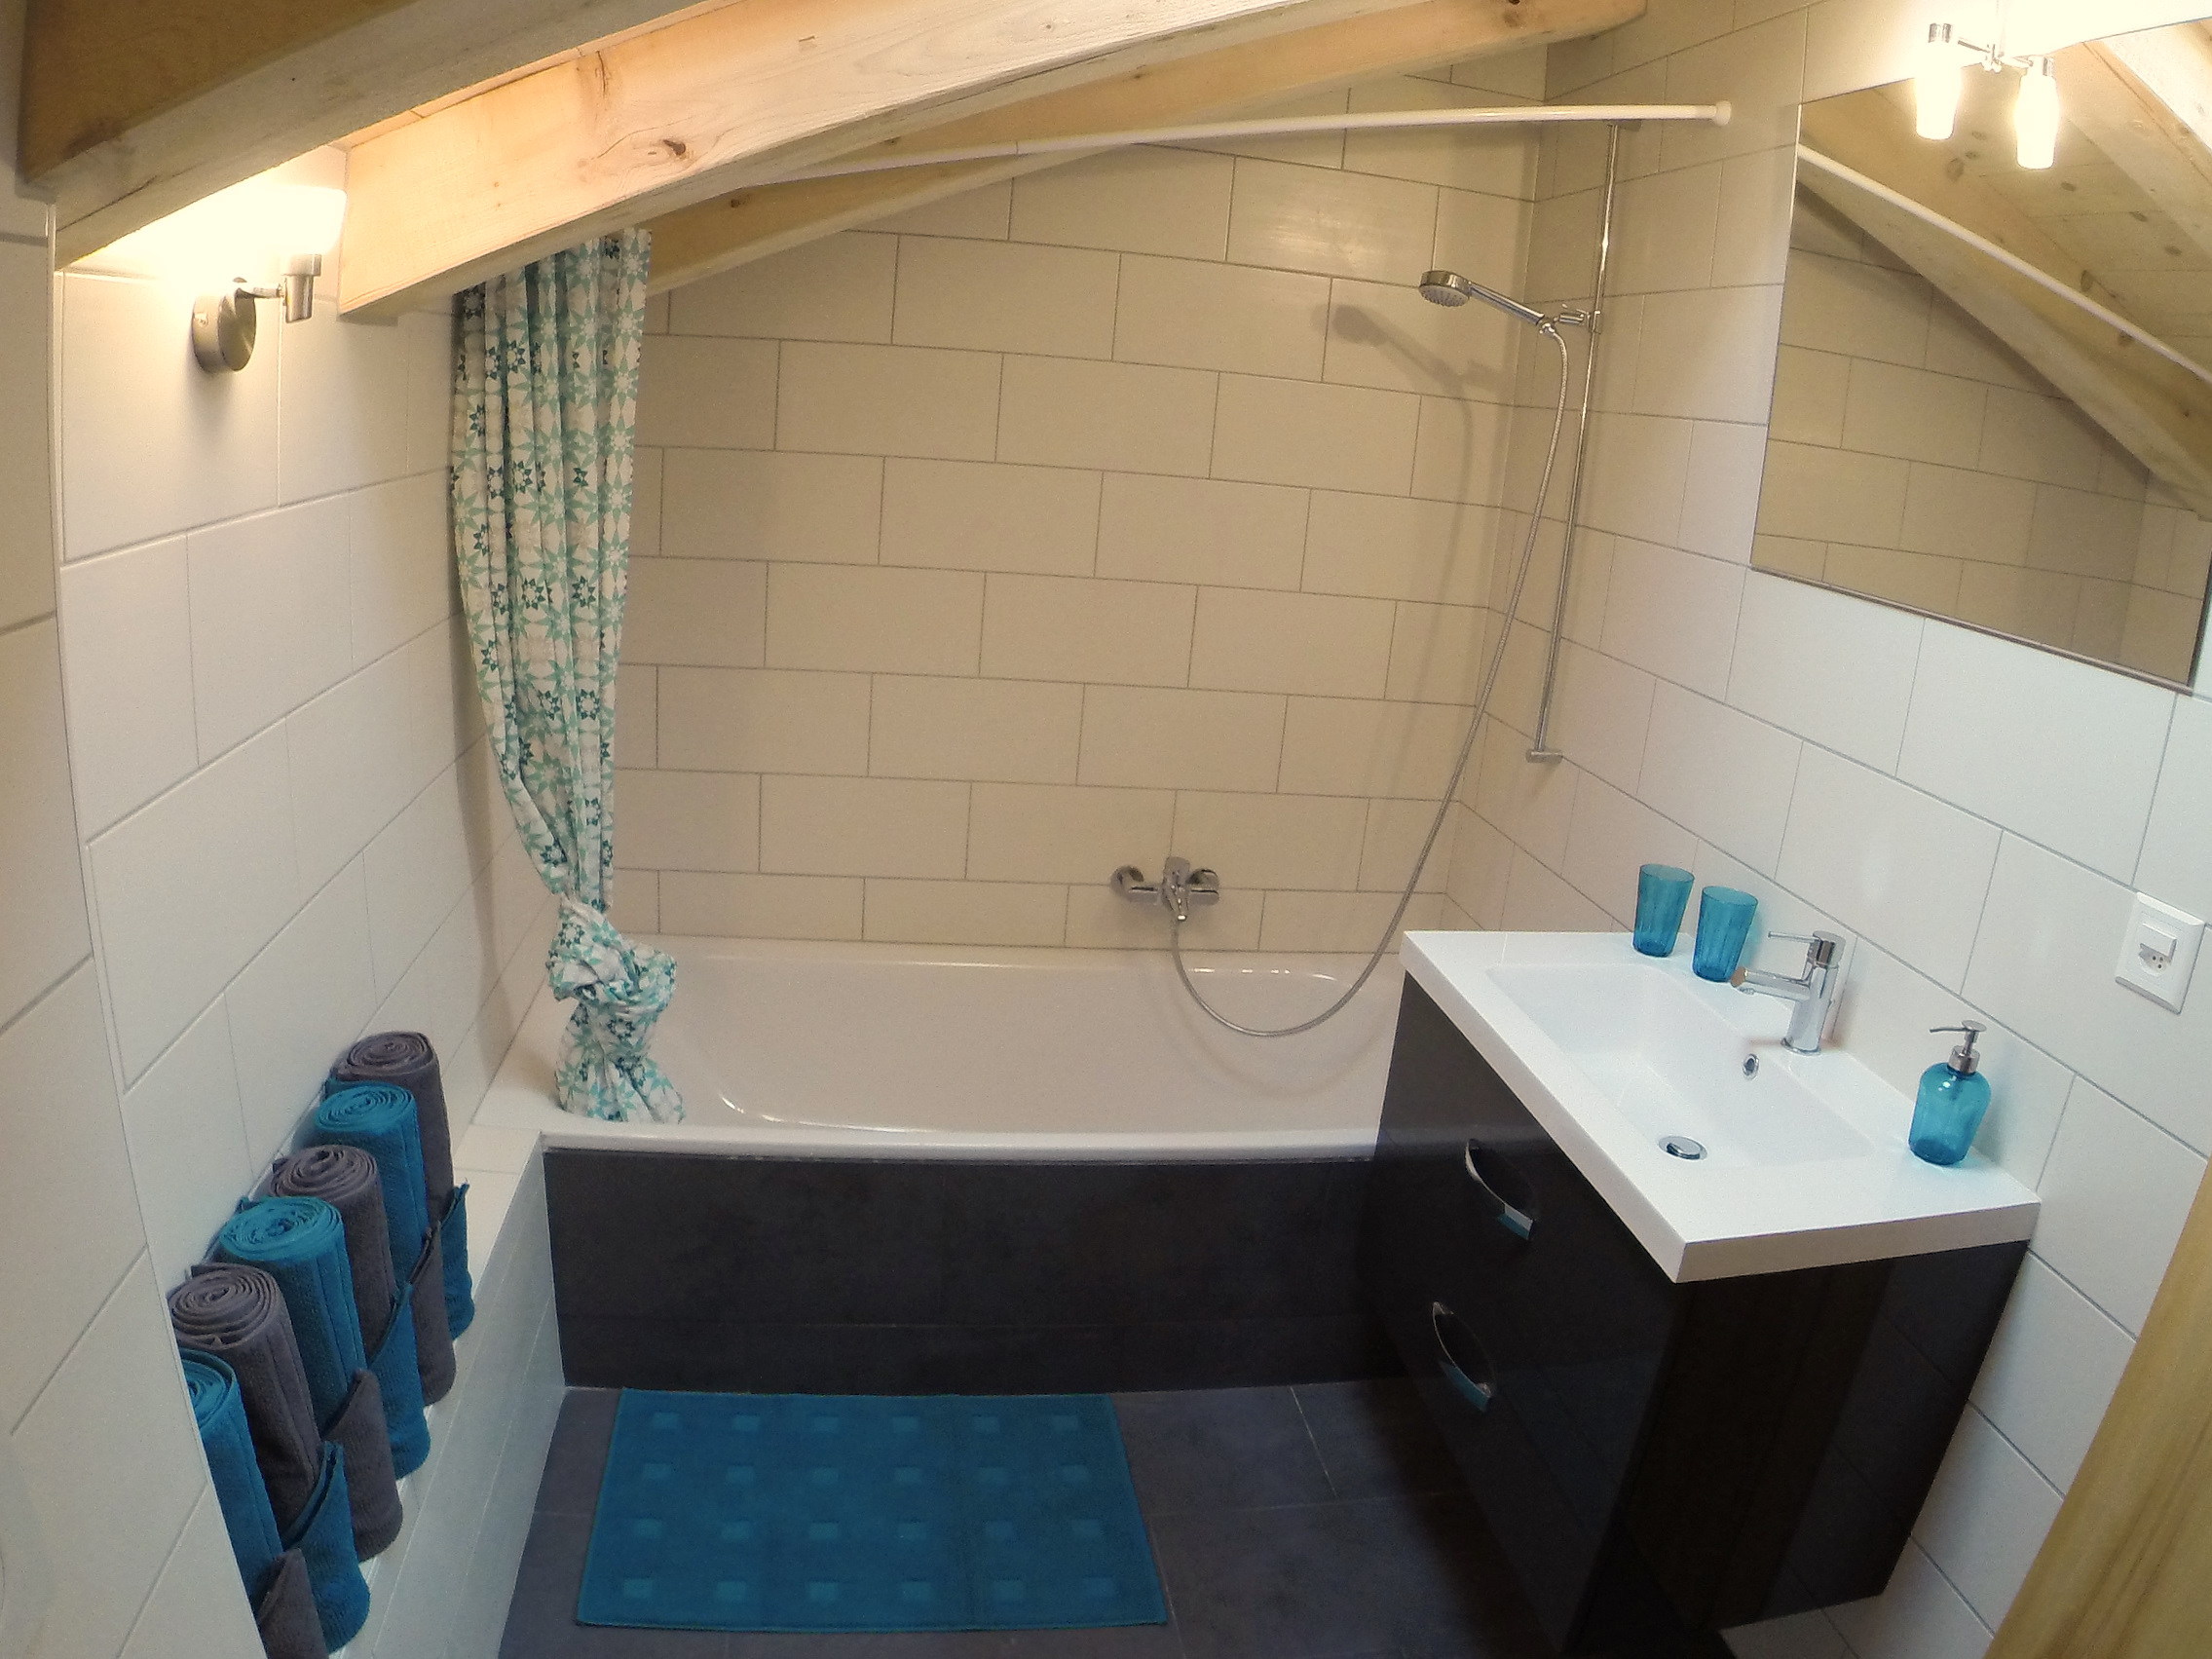 Bathroom A: Toilet and bathtub